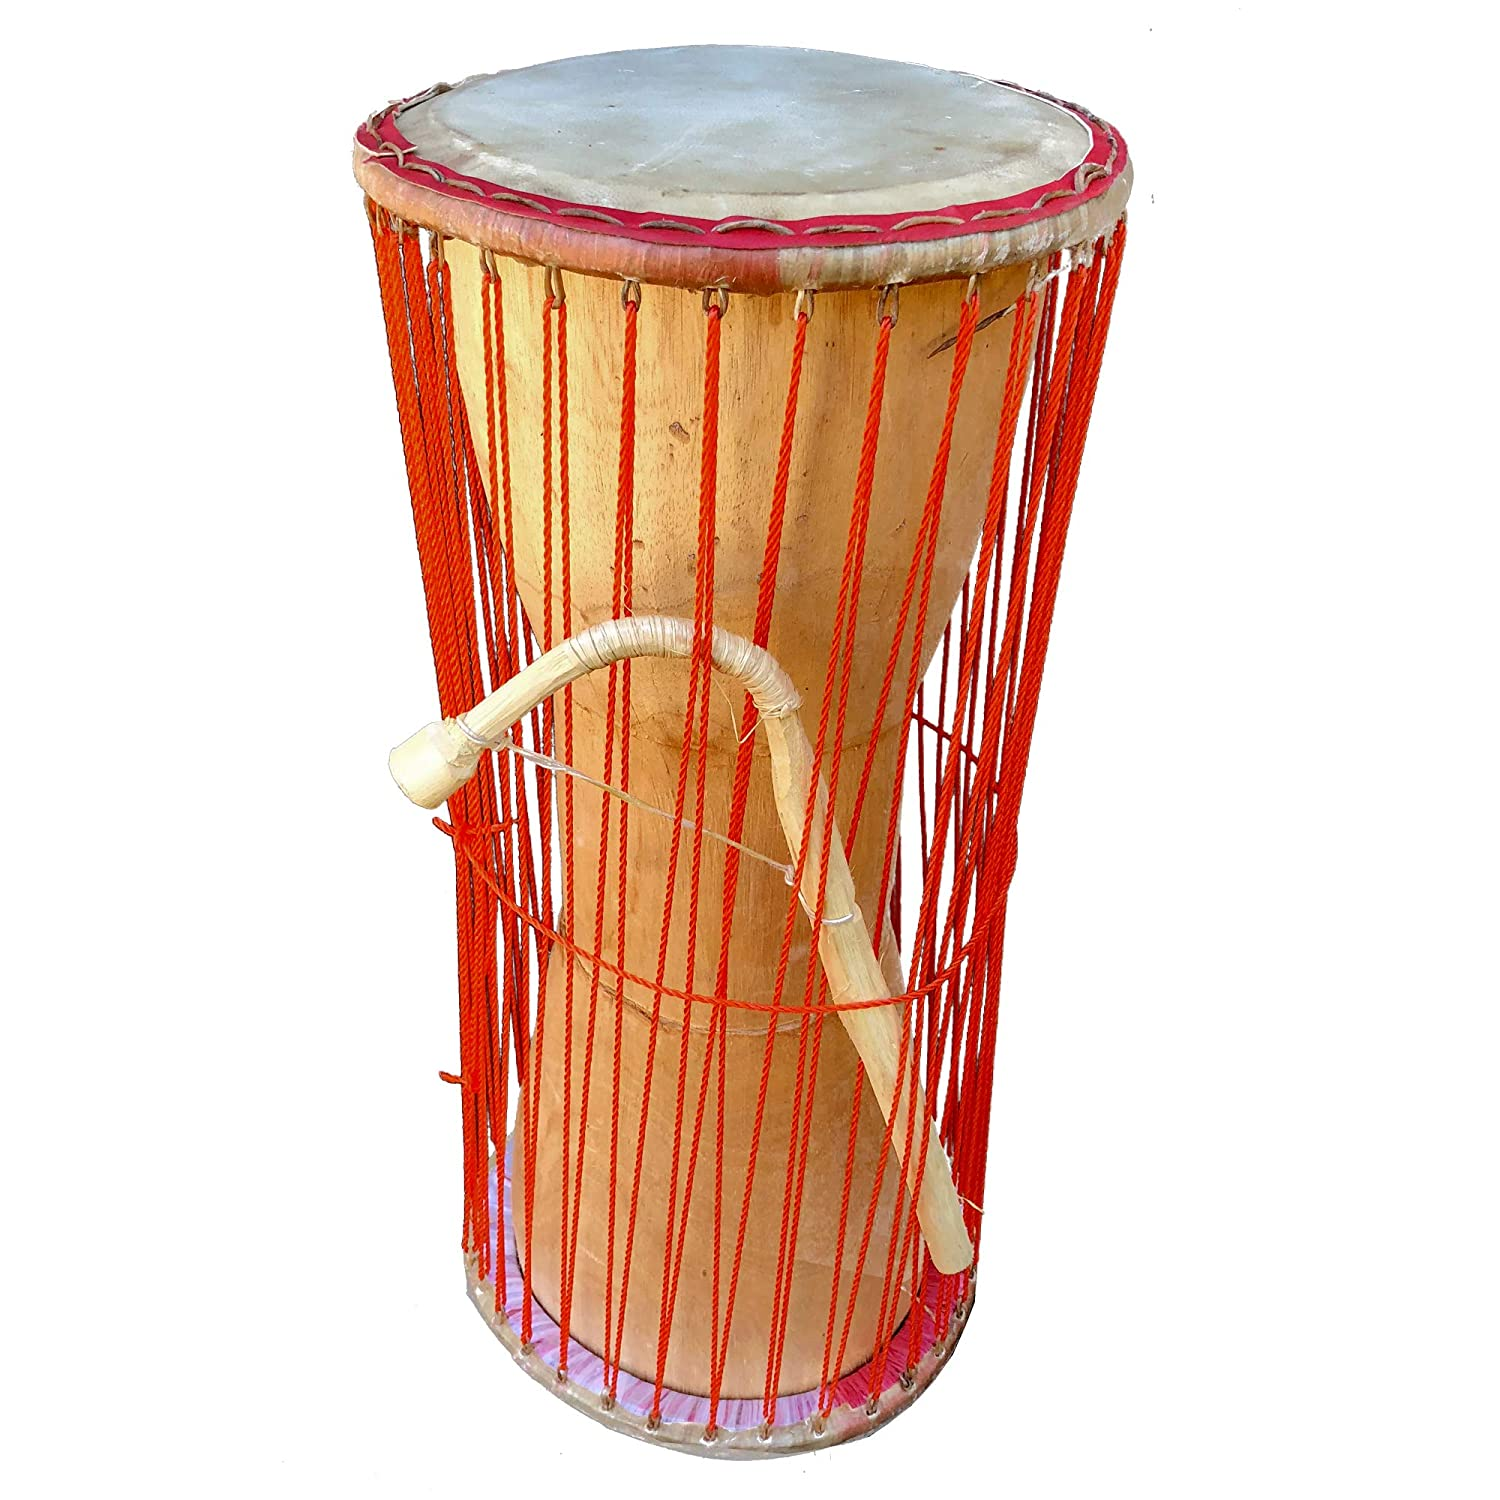 Classic Heartwood Dondo Talking Drum with stick - Large (8